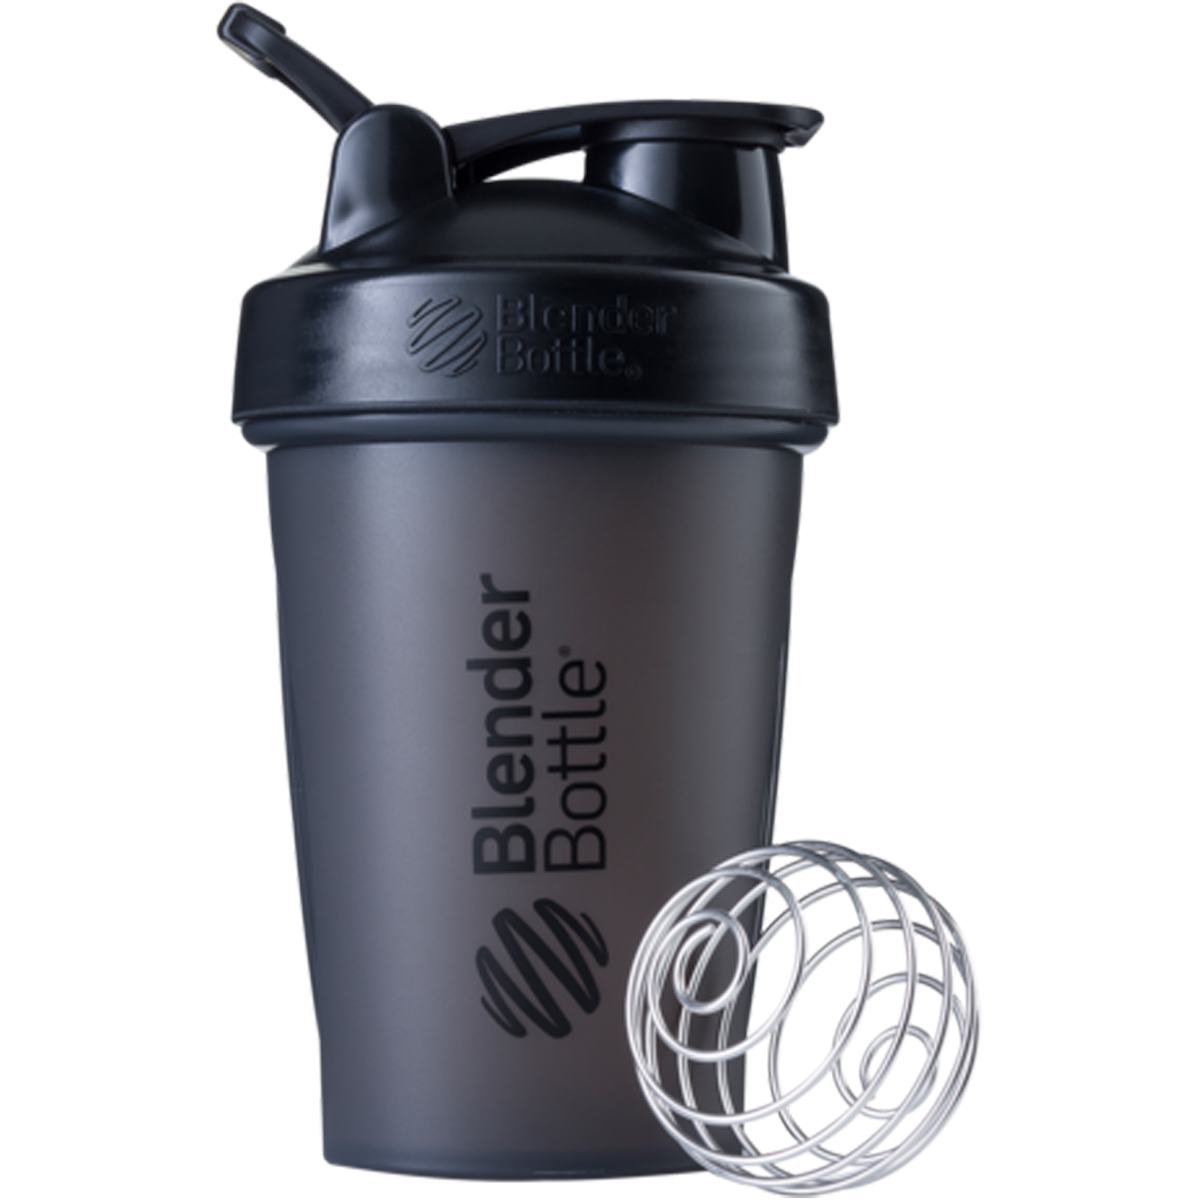 Blenderbottle Water Bottles & Hydration